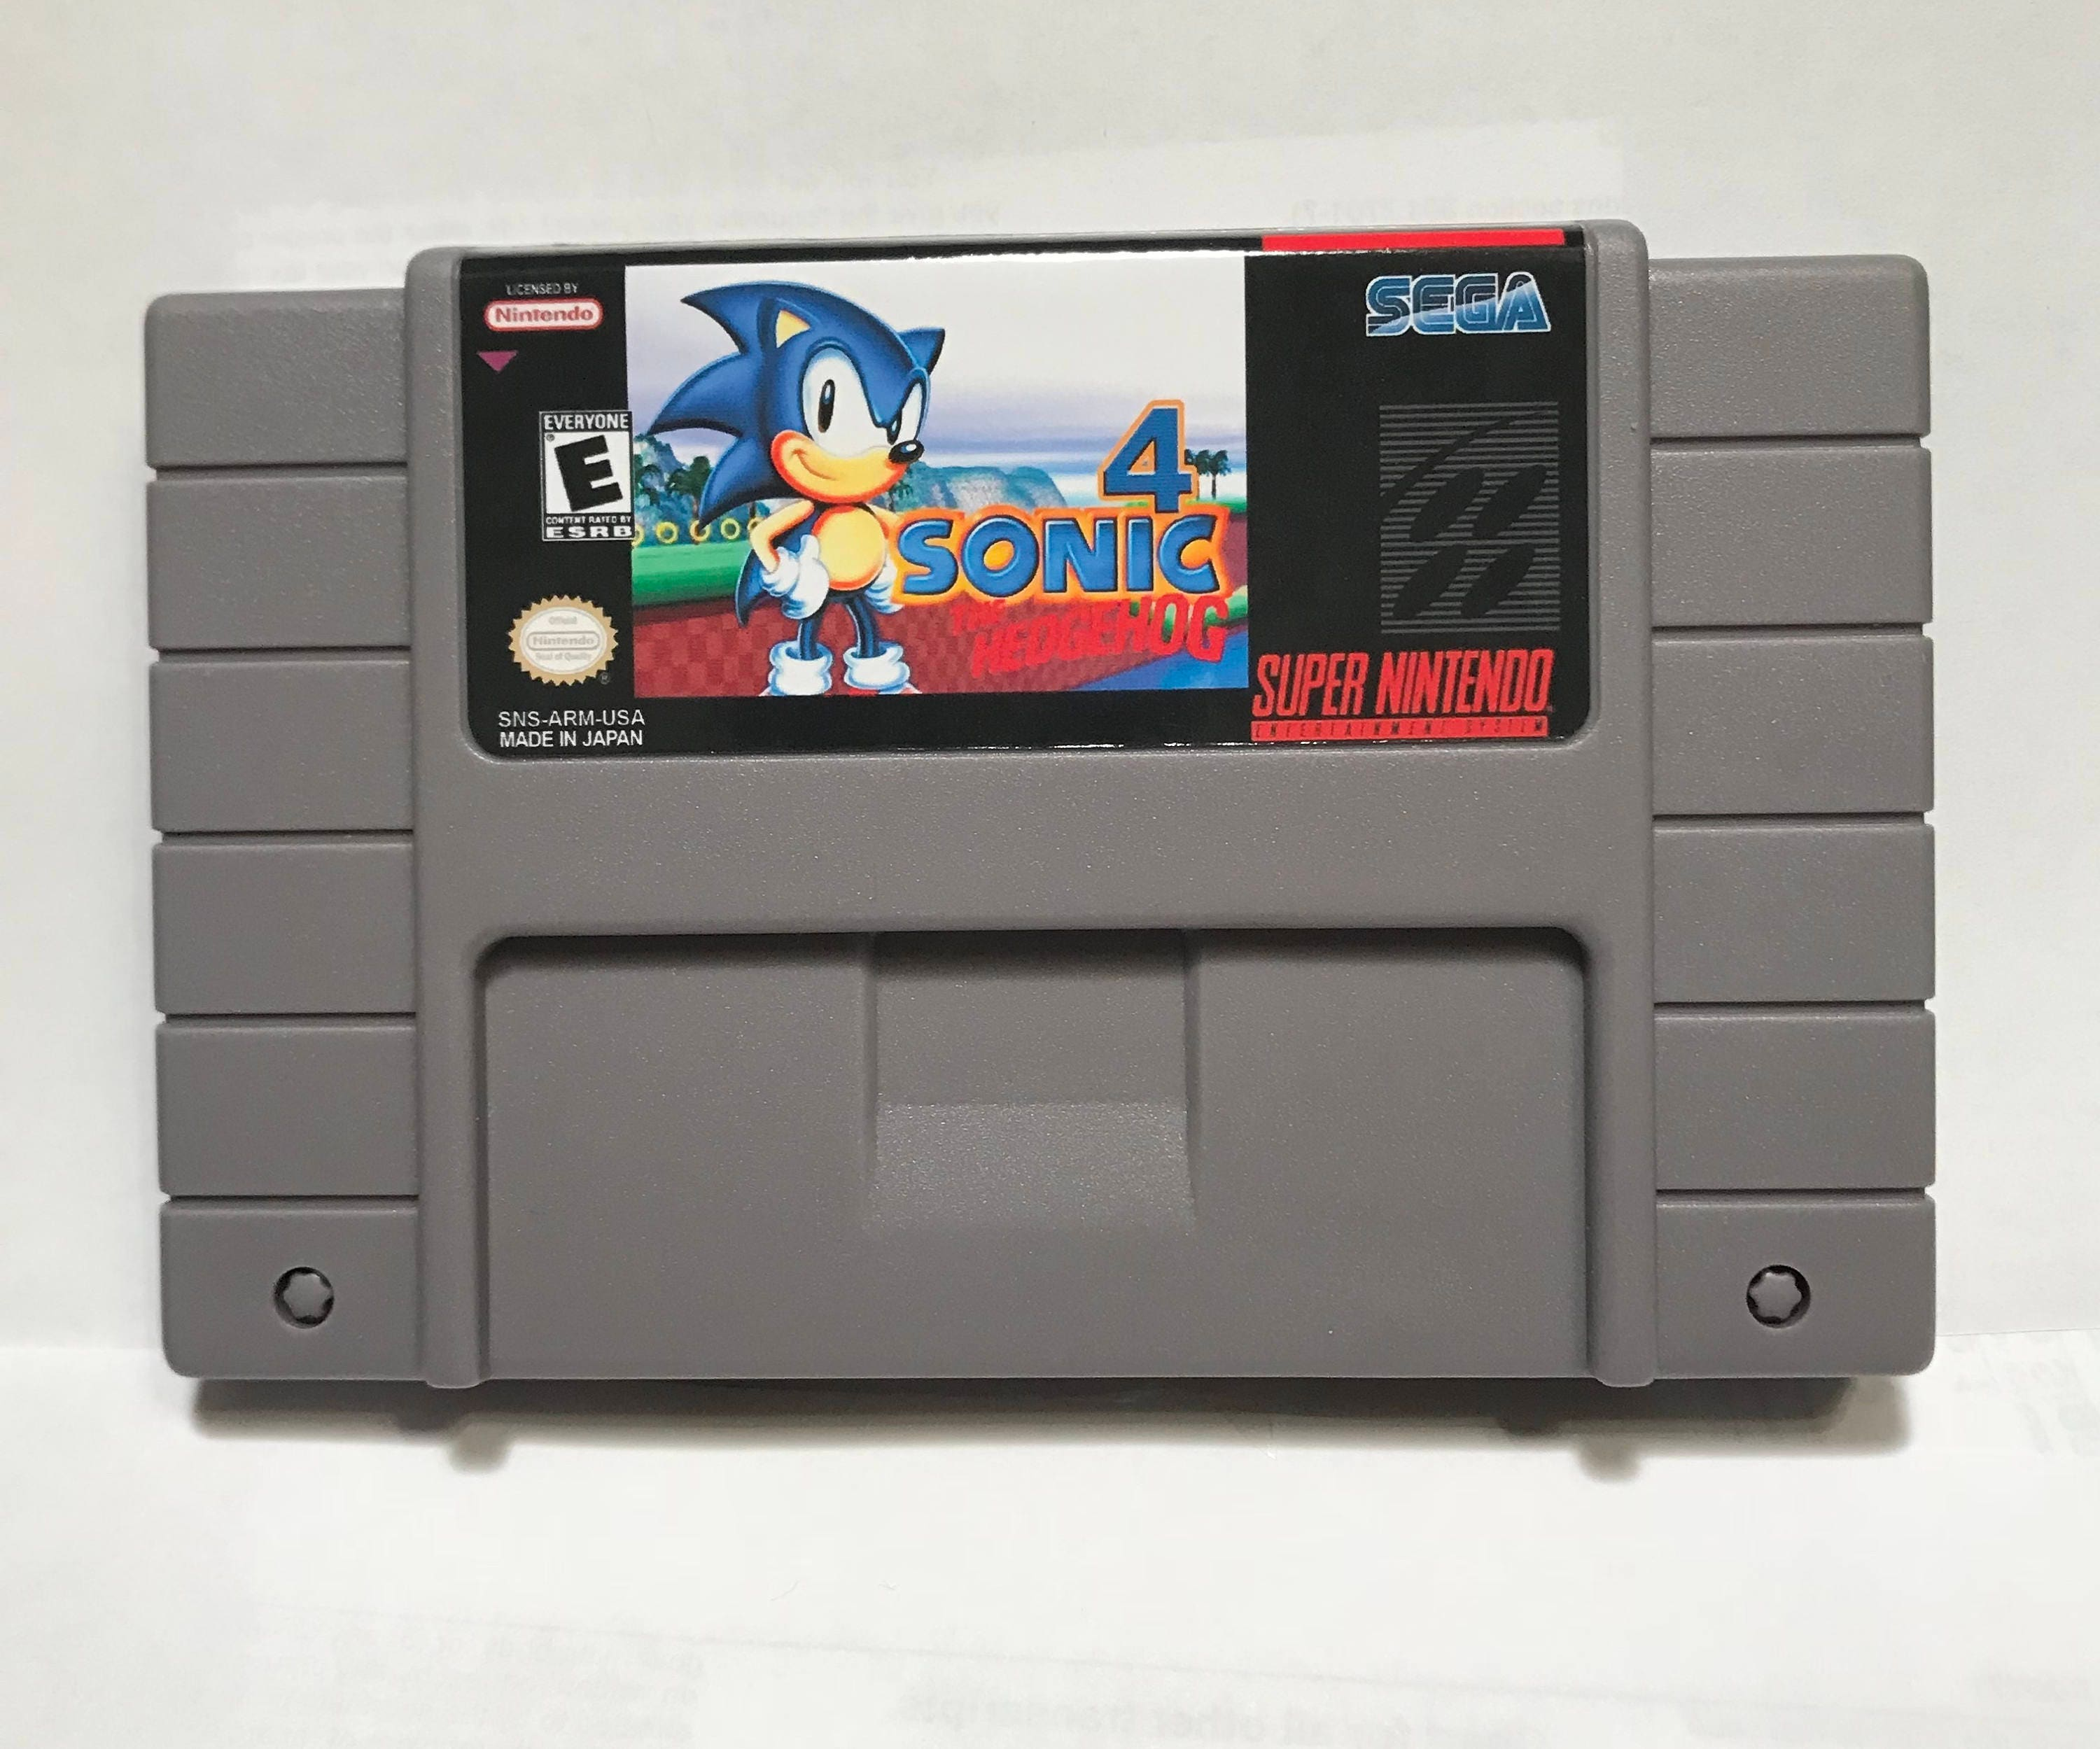 Sonic The Hedgehog 4 Fan Made Hack Reproduction Super Nintendo Etsy